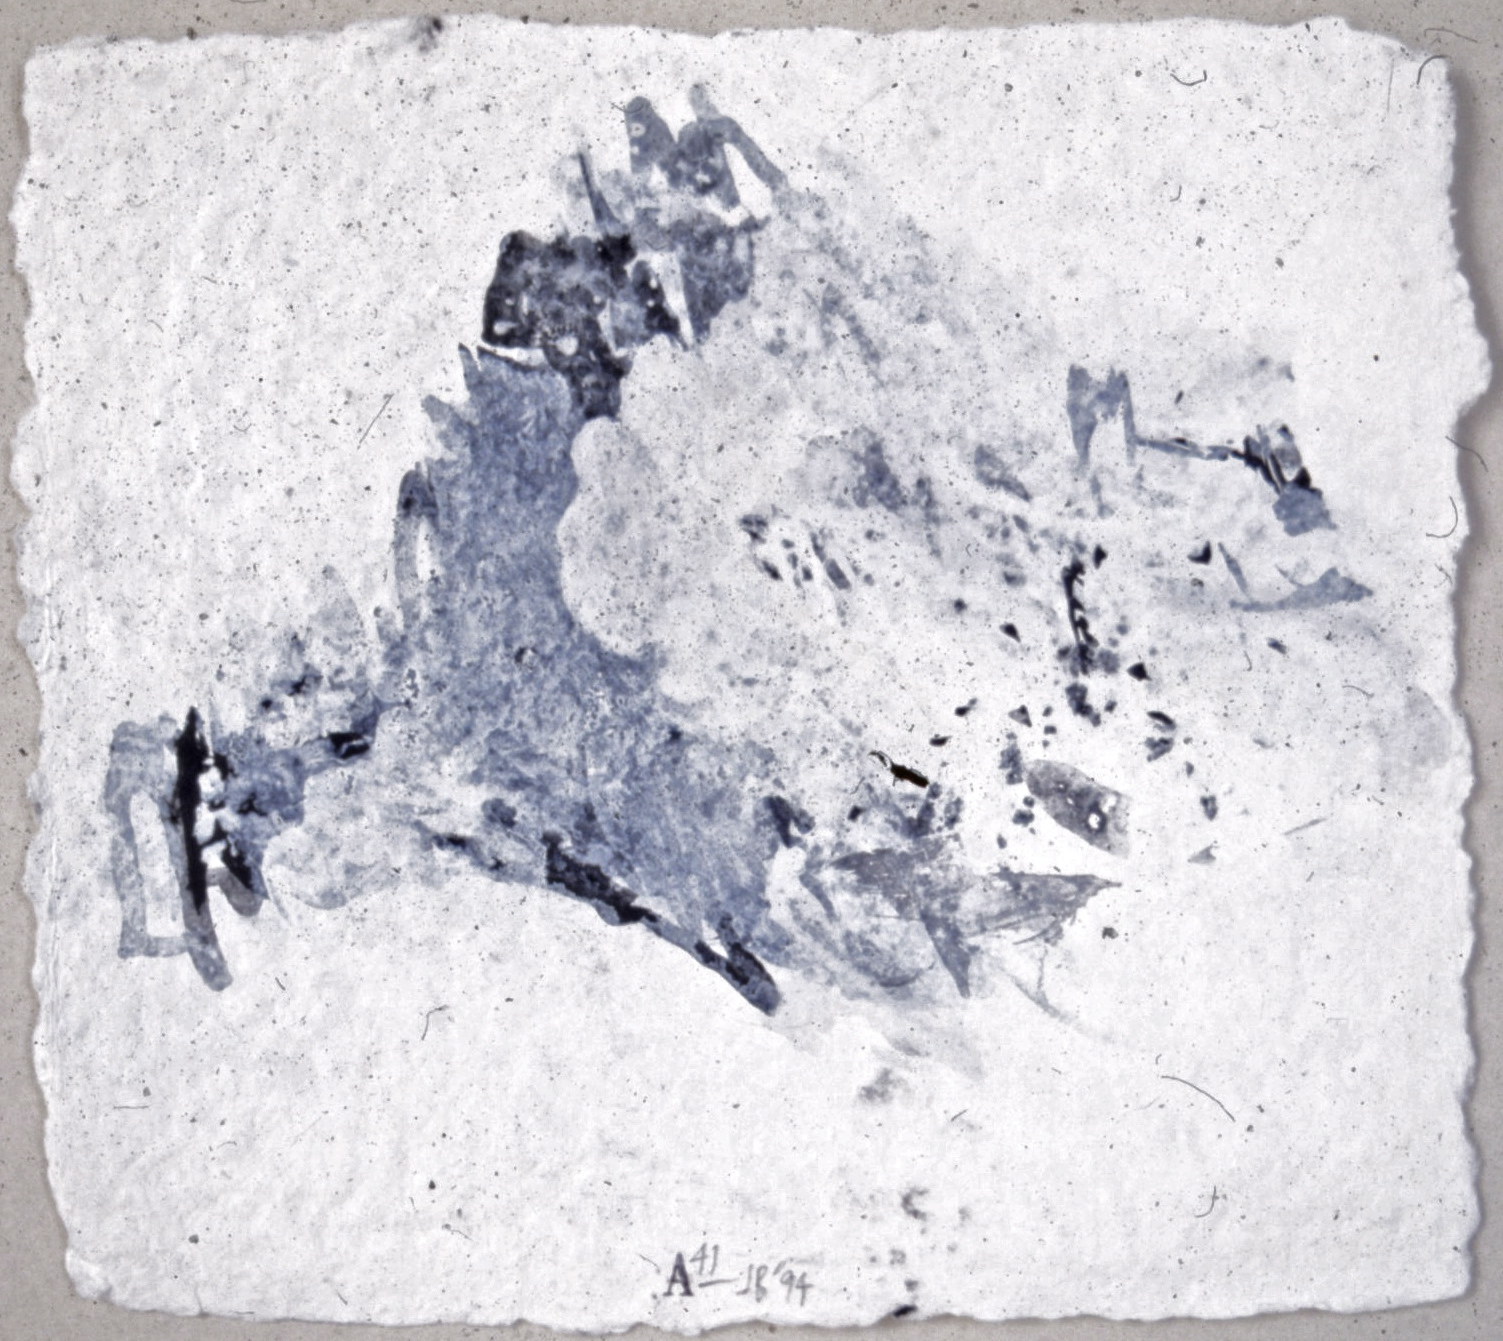 58)+Adraga+41,+1994+raw+pigment+on+rag+paper+28x28+cm.jpg